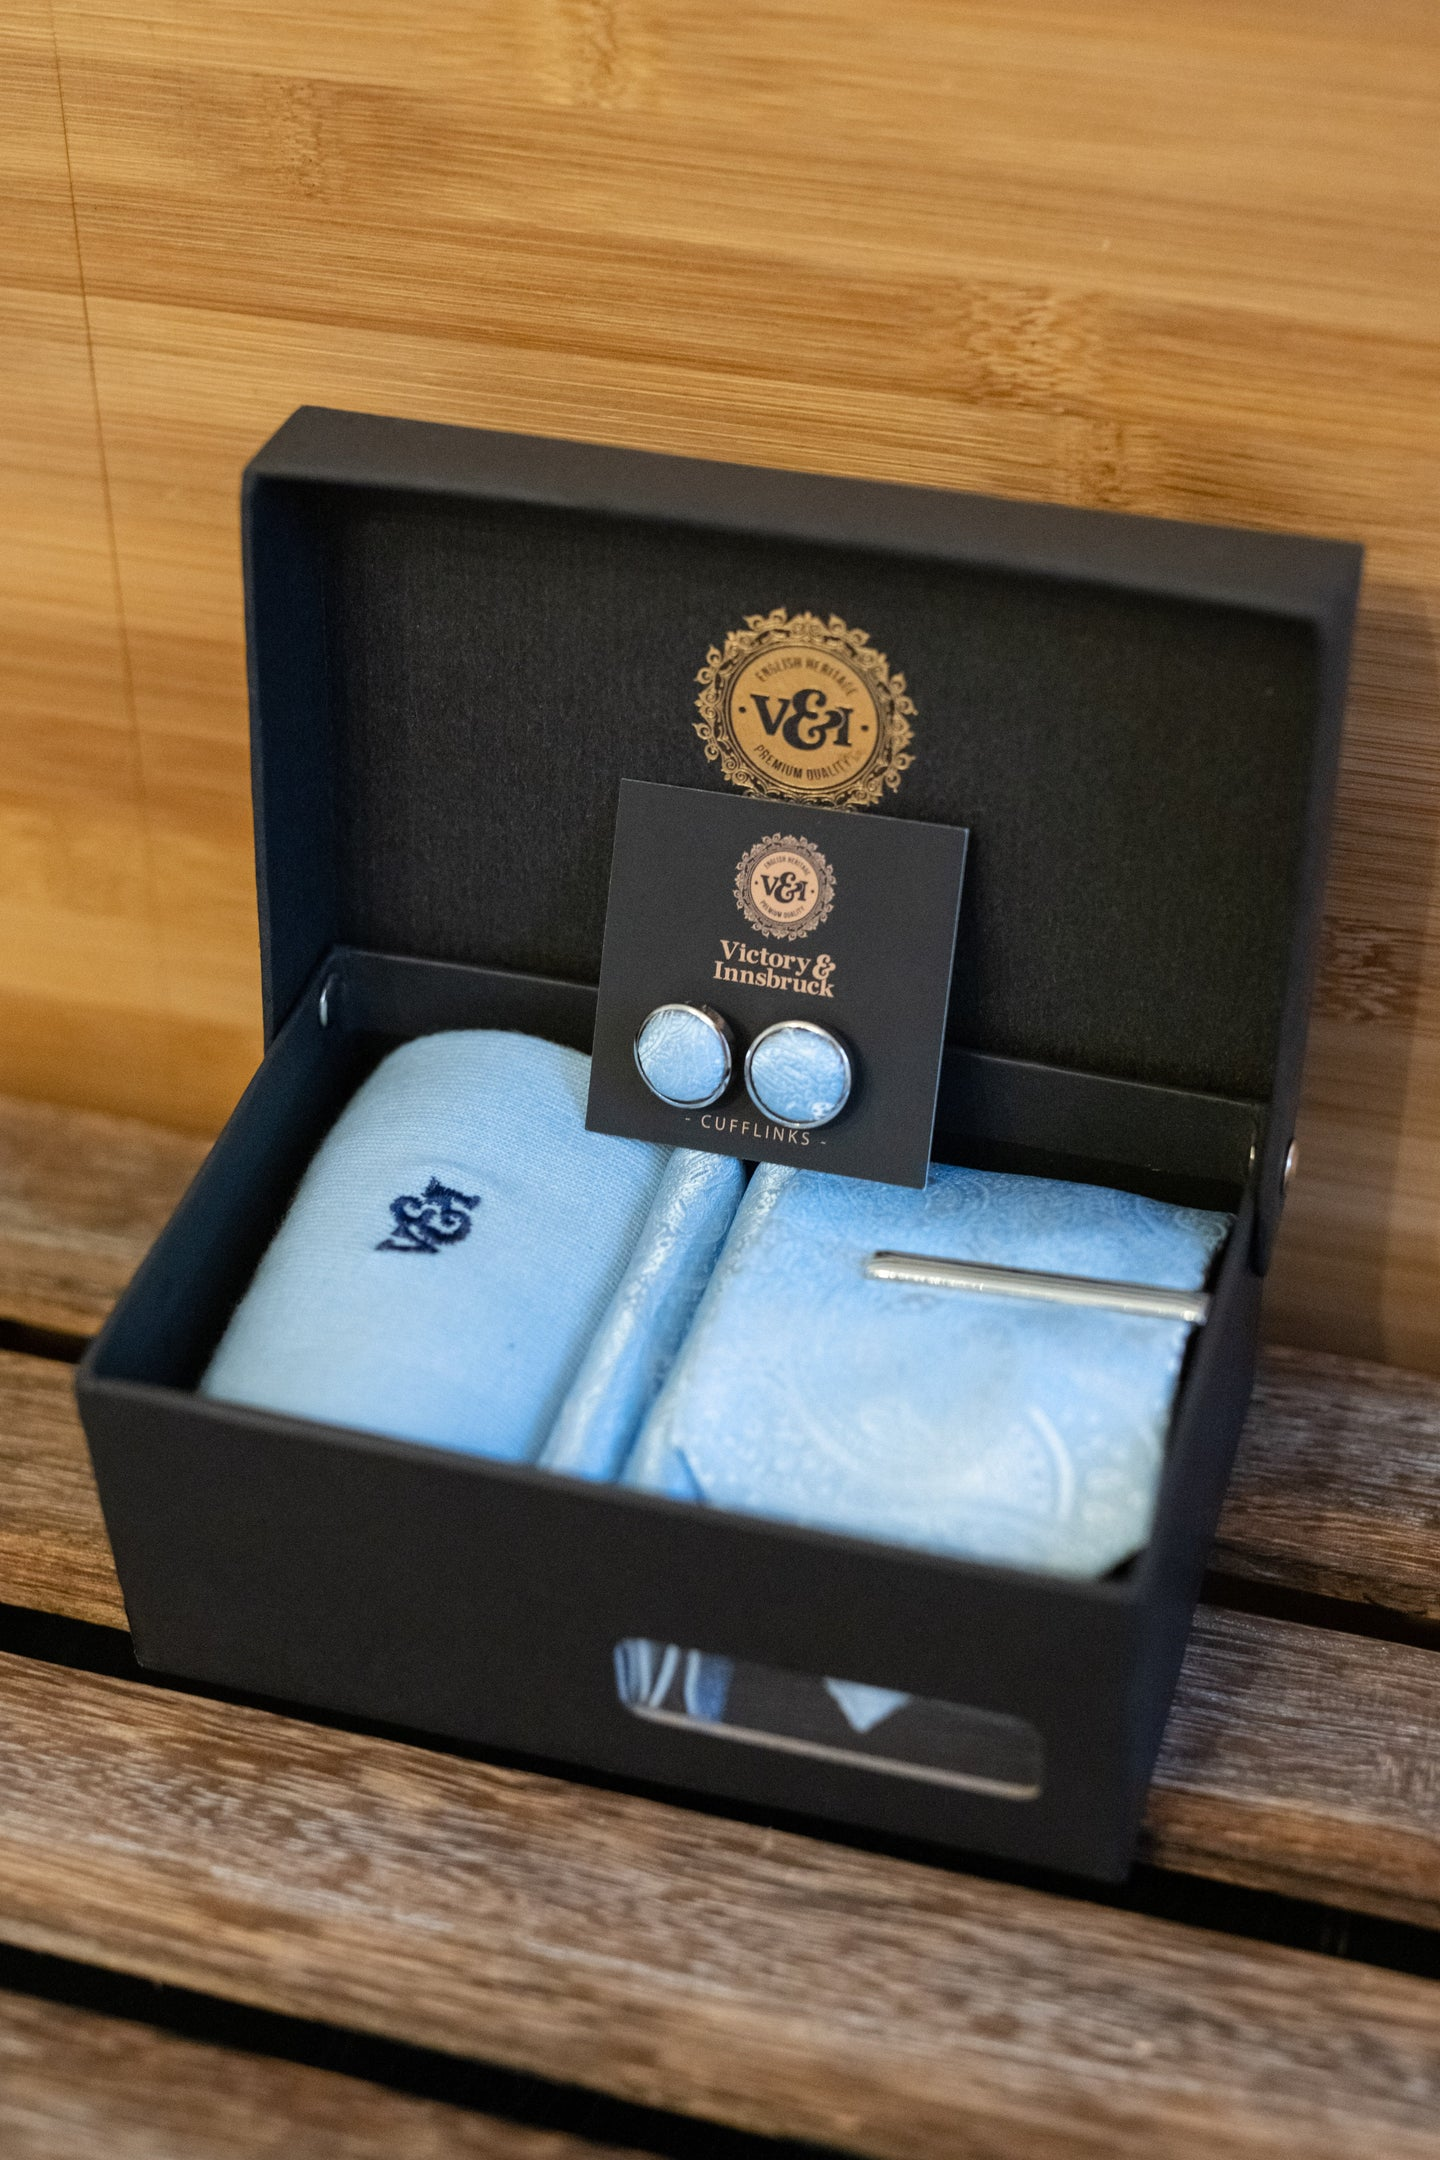 Victory & Innsbruck Light Blue Paisley Tie Box Set